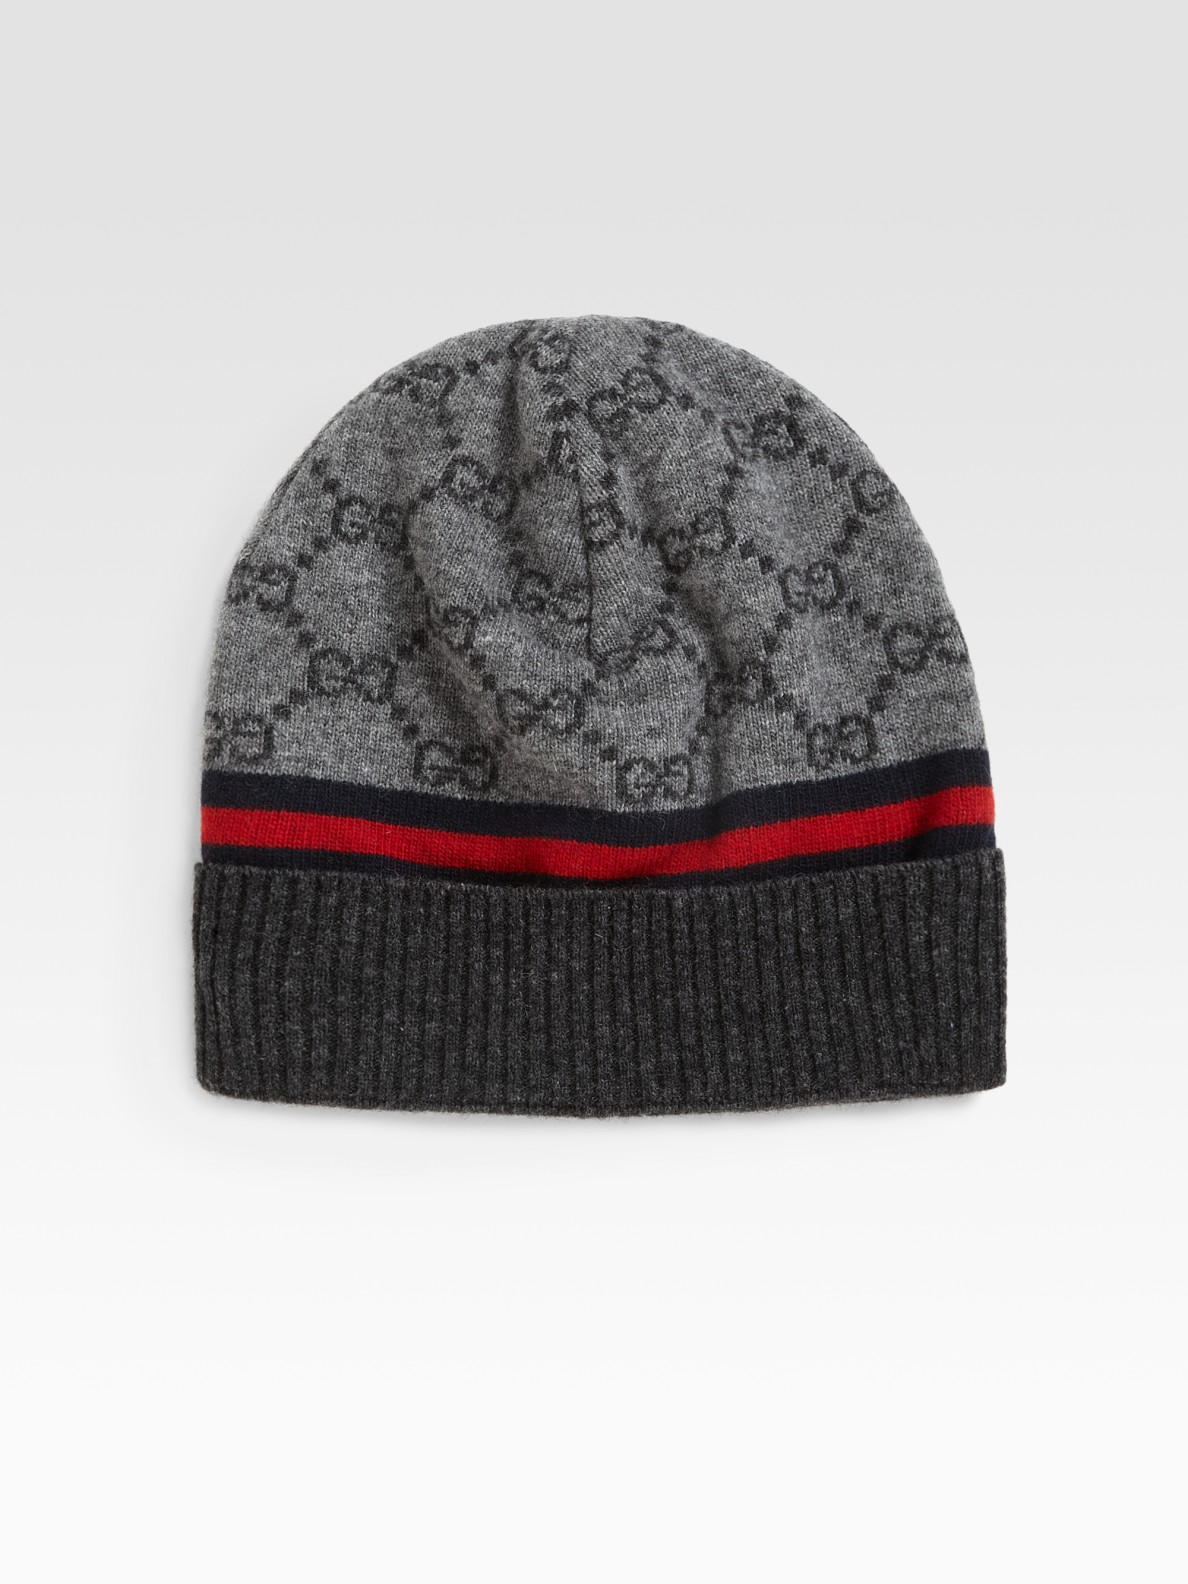 Lyst Gucci Arwin Hat In Gray For Men